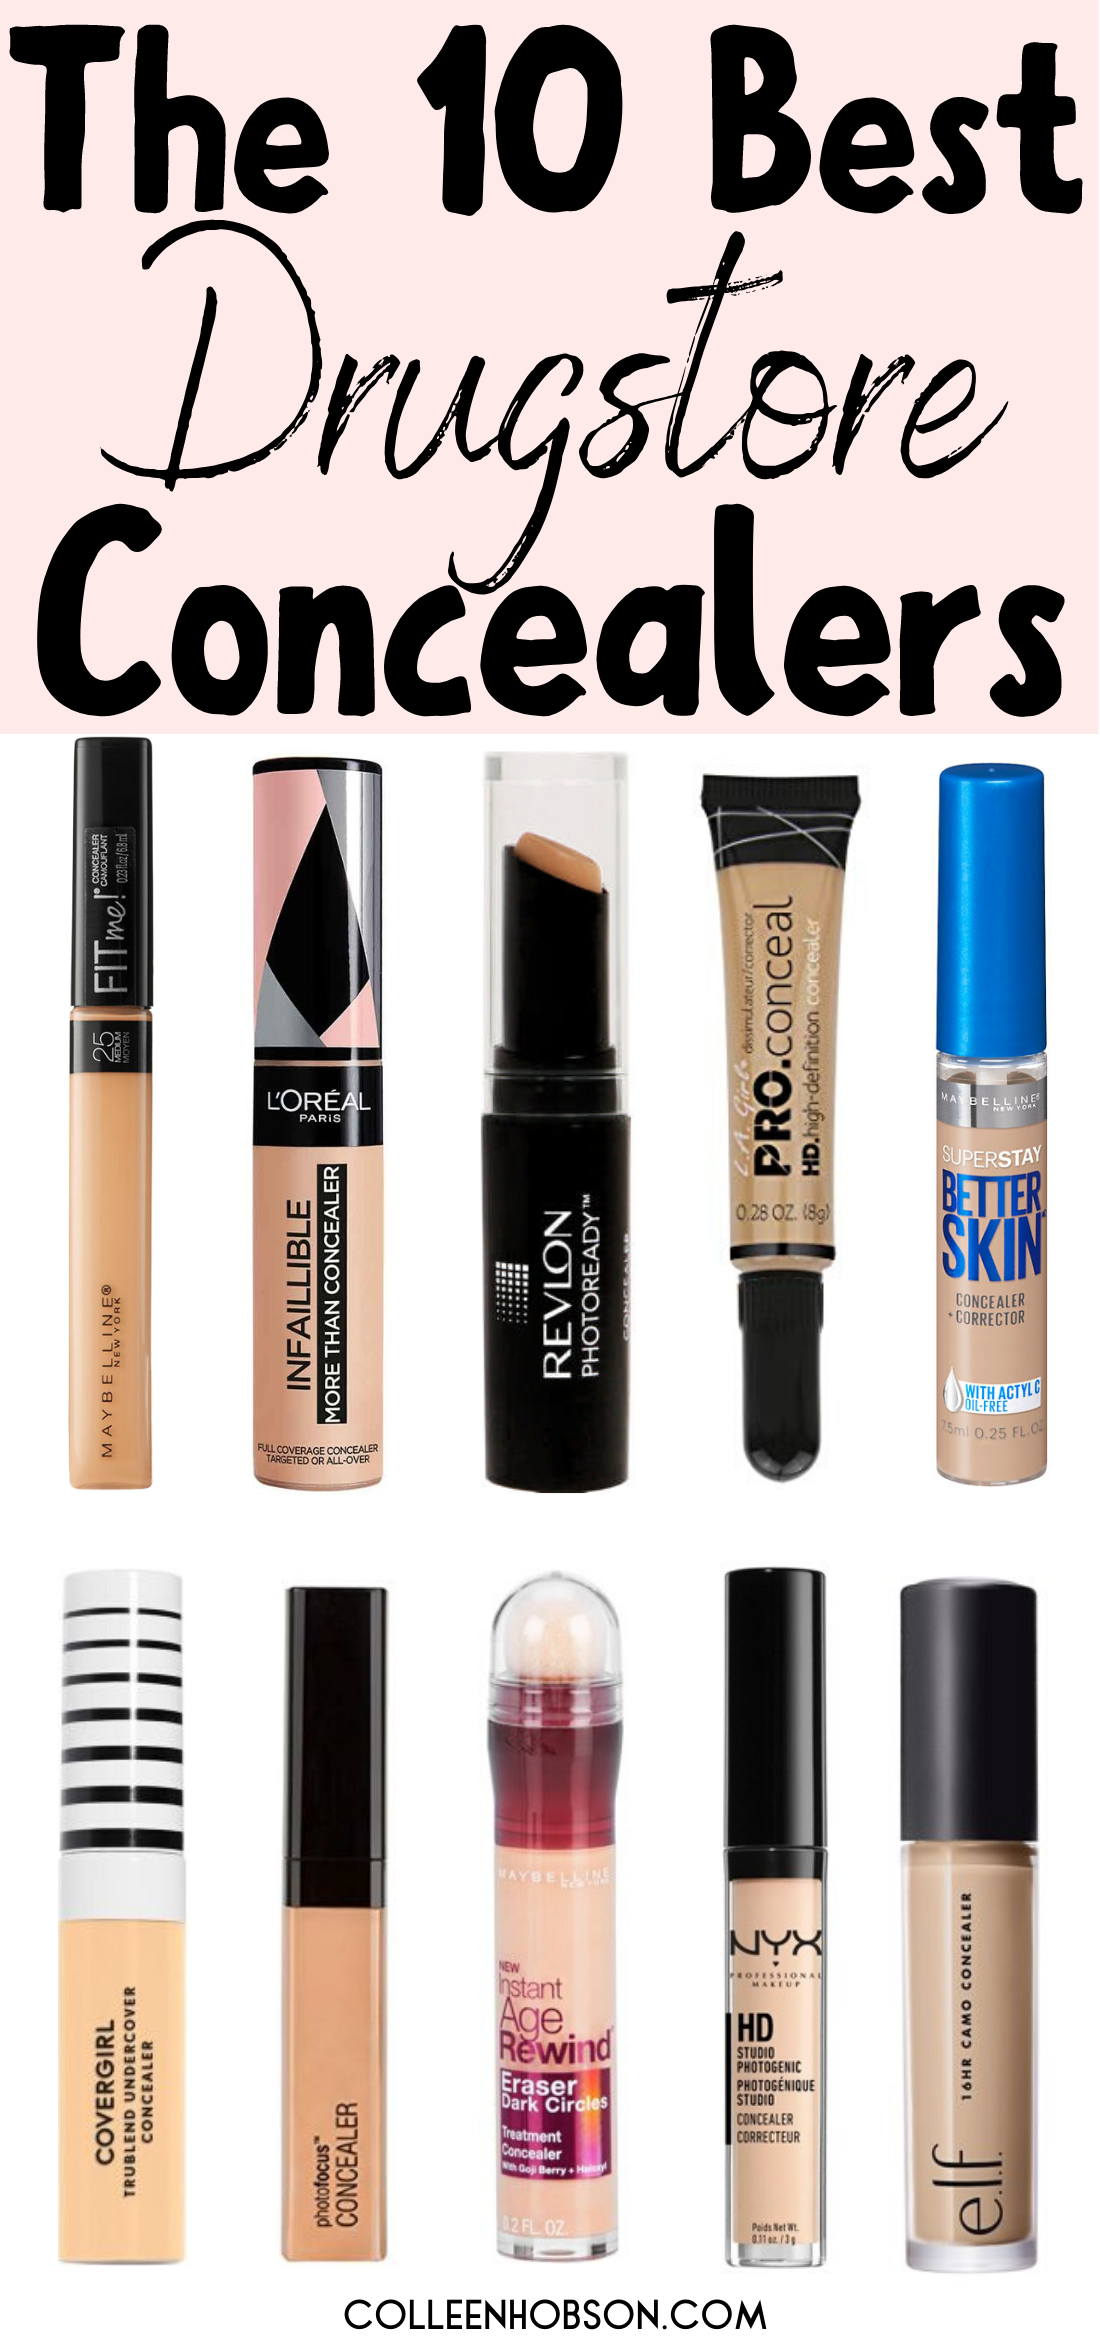 The 10 Best Drugstore Concealers On The Market Today Colleen Hobson In 2020 Best Drugstore Concealer Drugstore Concealer Concealer